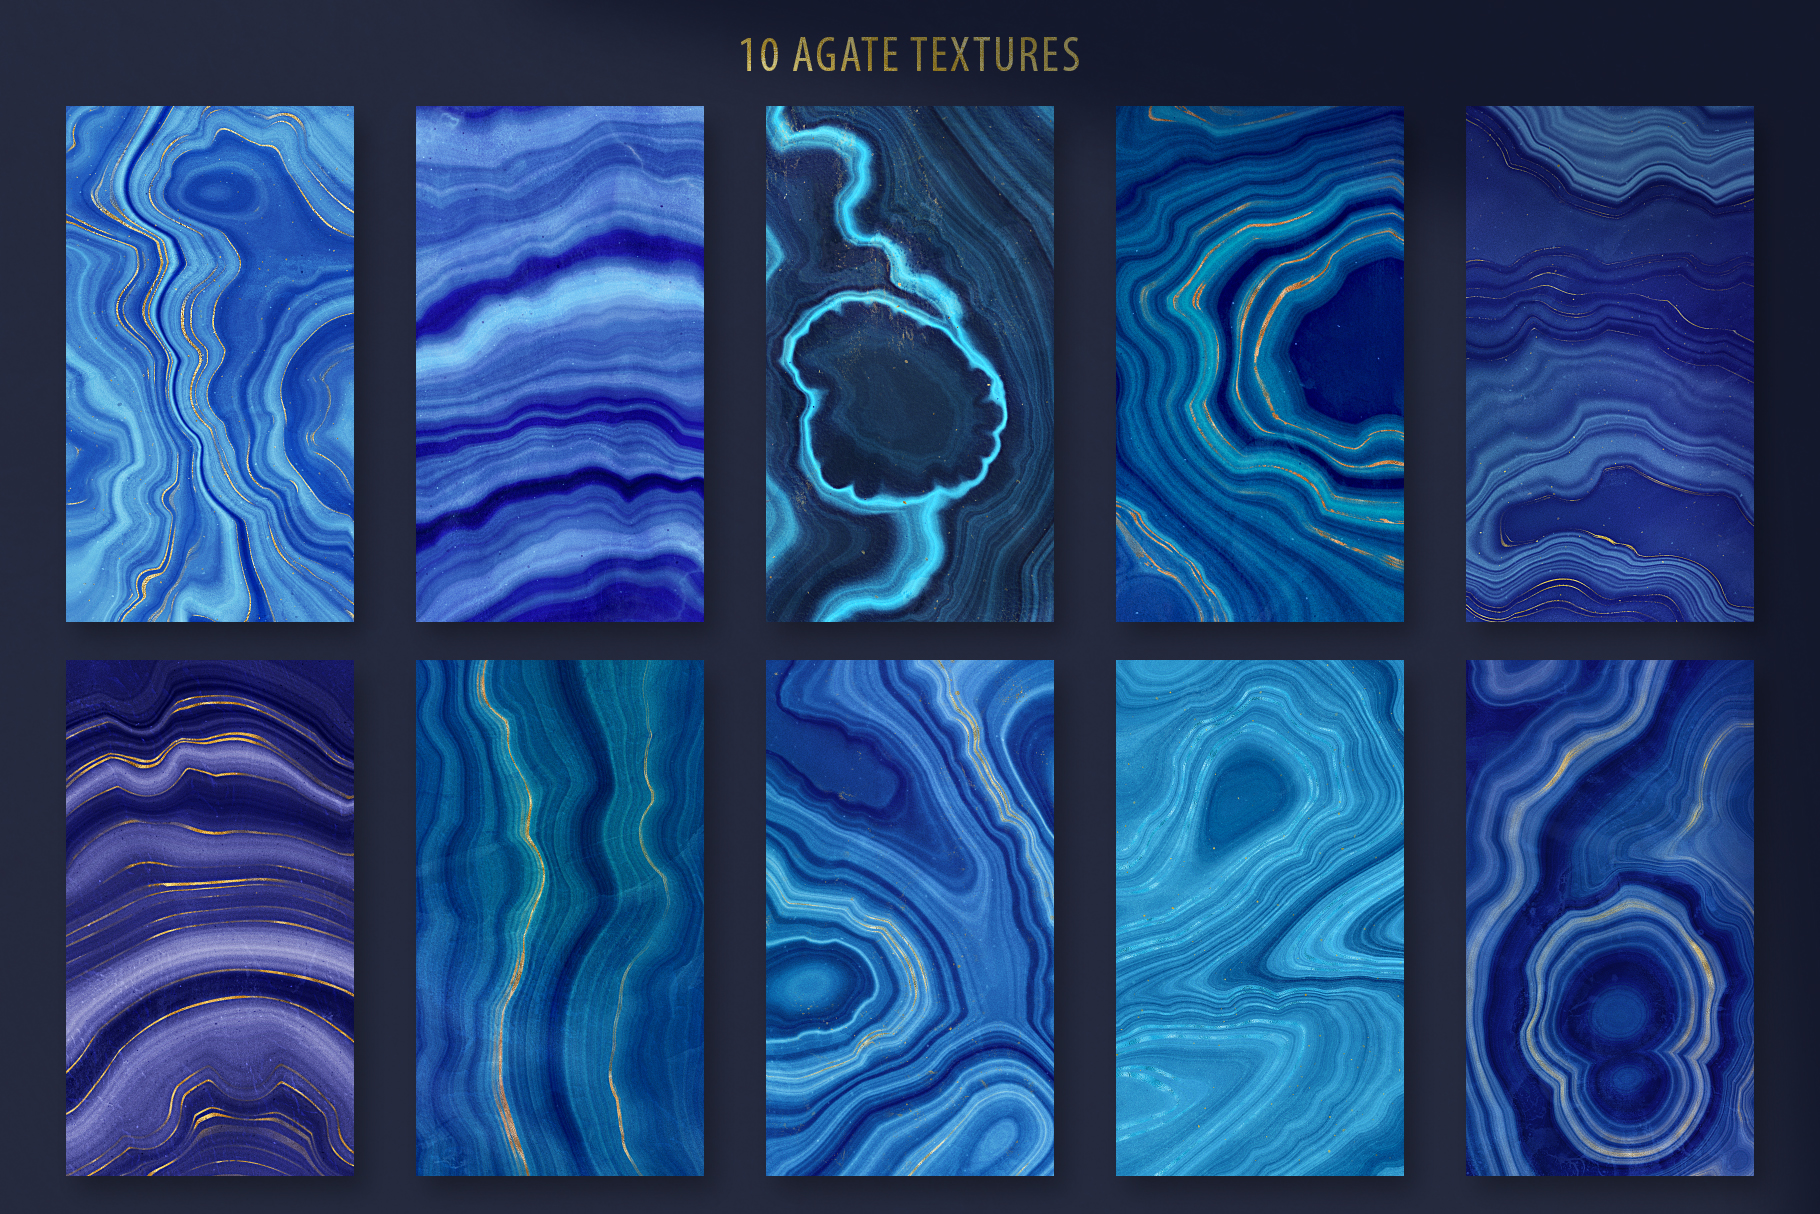 Blue & Gold Agate Geode Textures - 20 Digital Papers example image 2